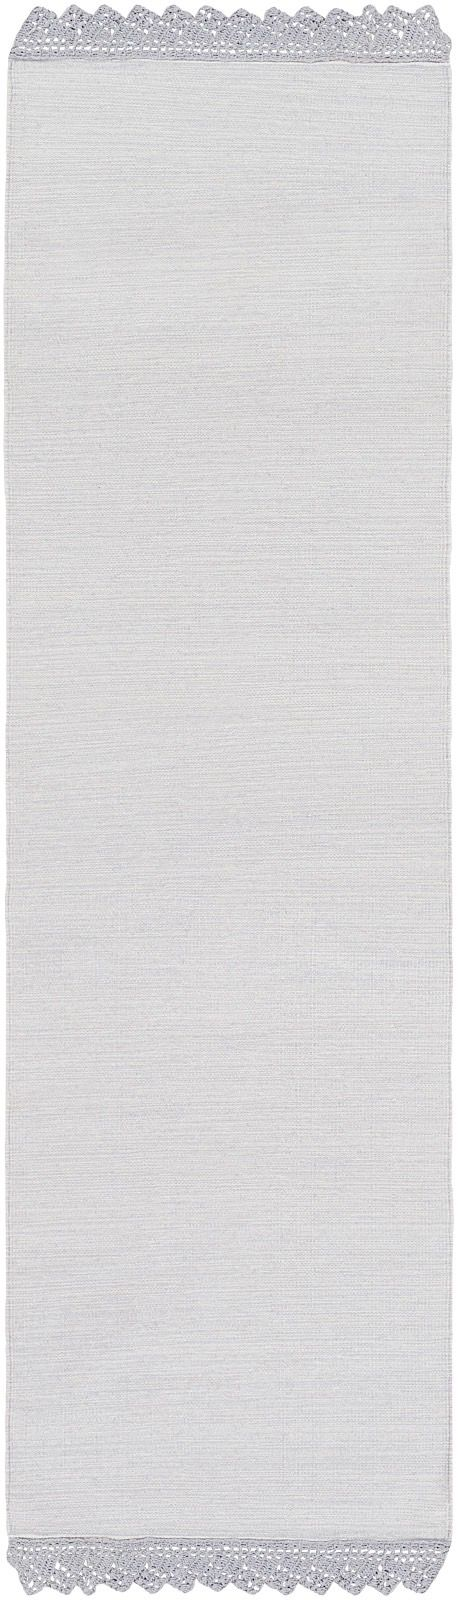 surya grace solid/striped area rug collection